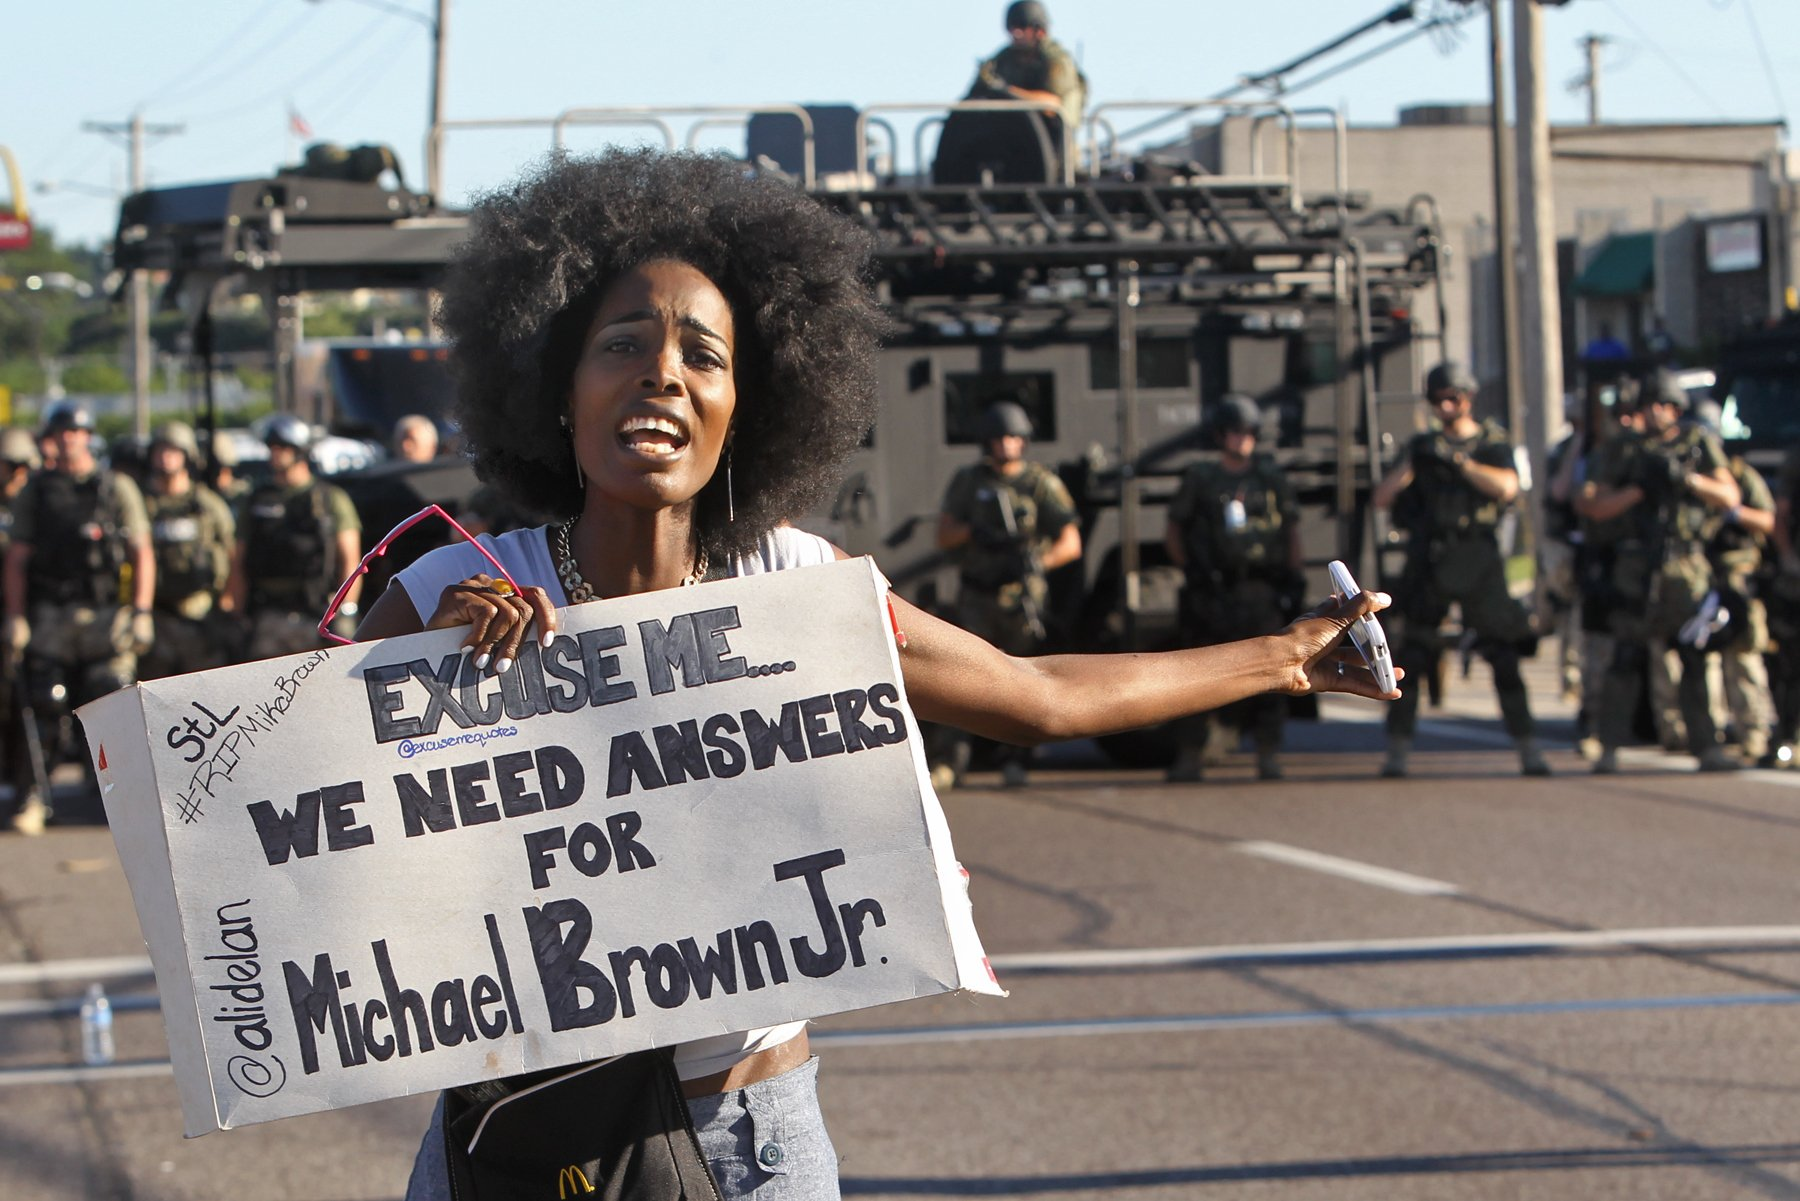 A protester shouts as she moved down W. Florissant Avenue away from the line of riot police in Ferguson on Wednesday, Aug. 13, 2014.Photo by J.B. Forbes.